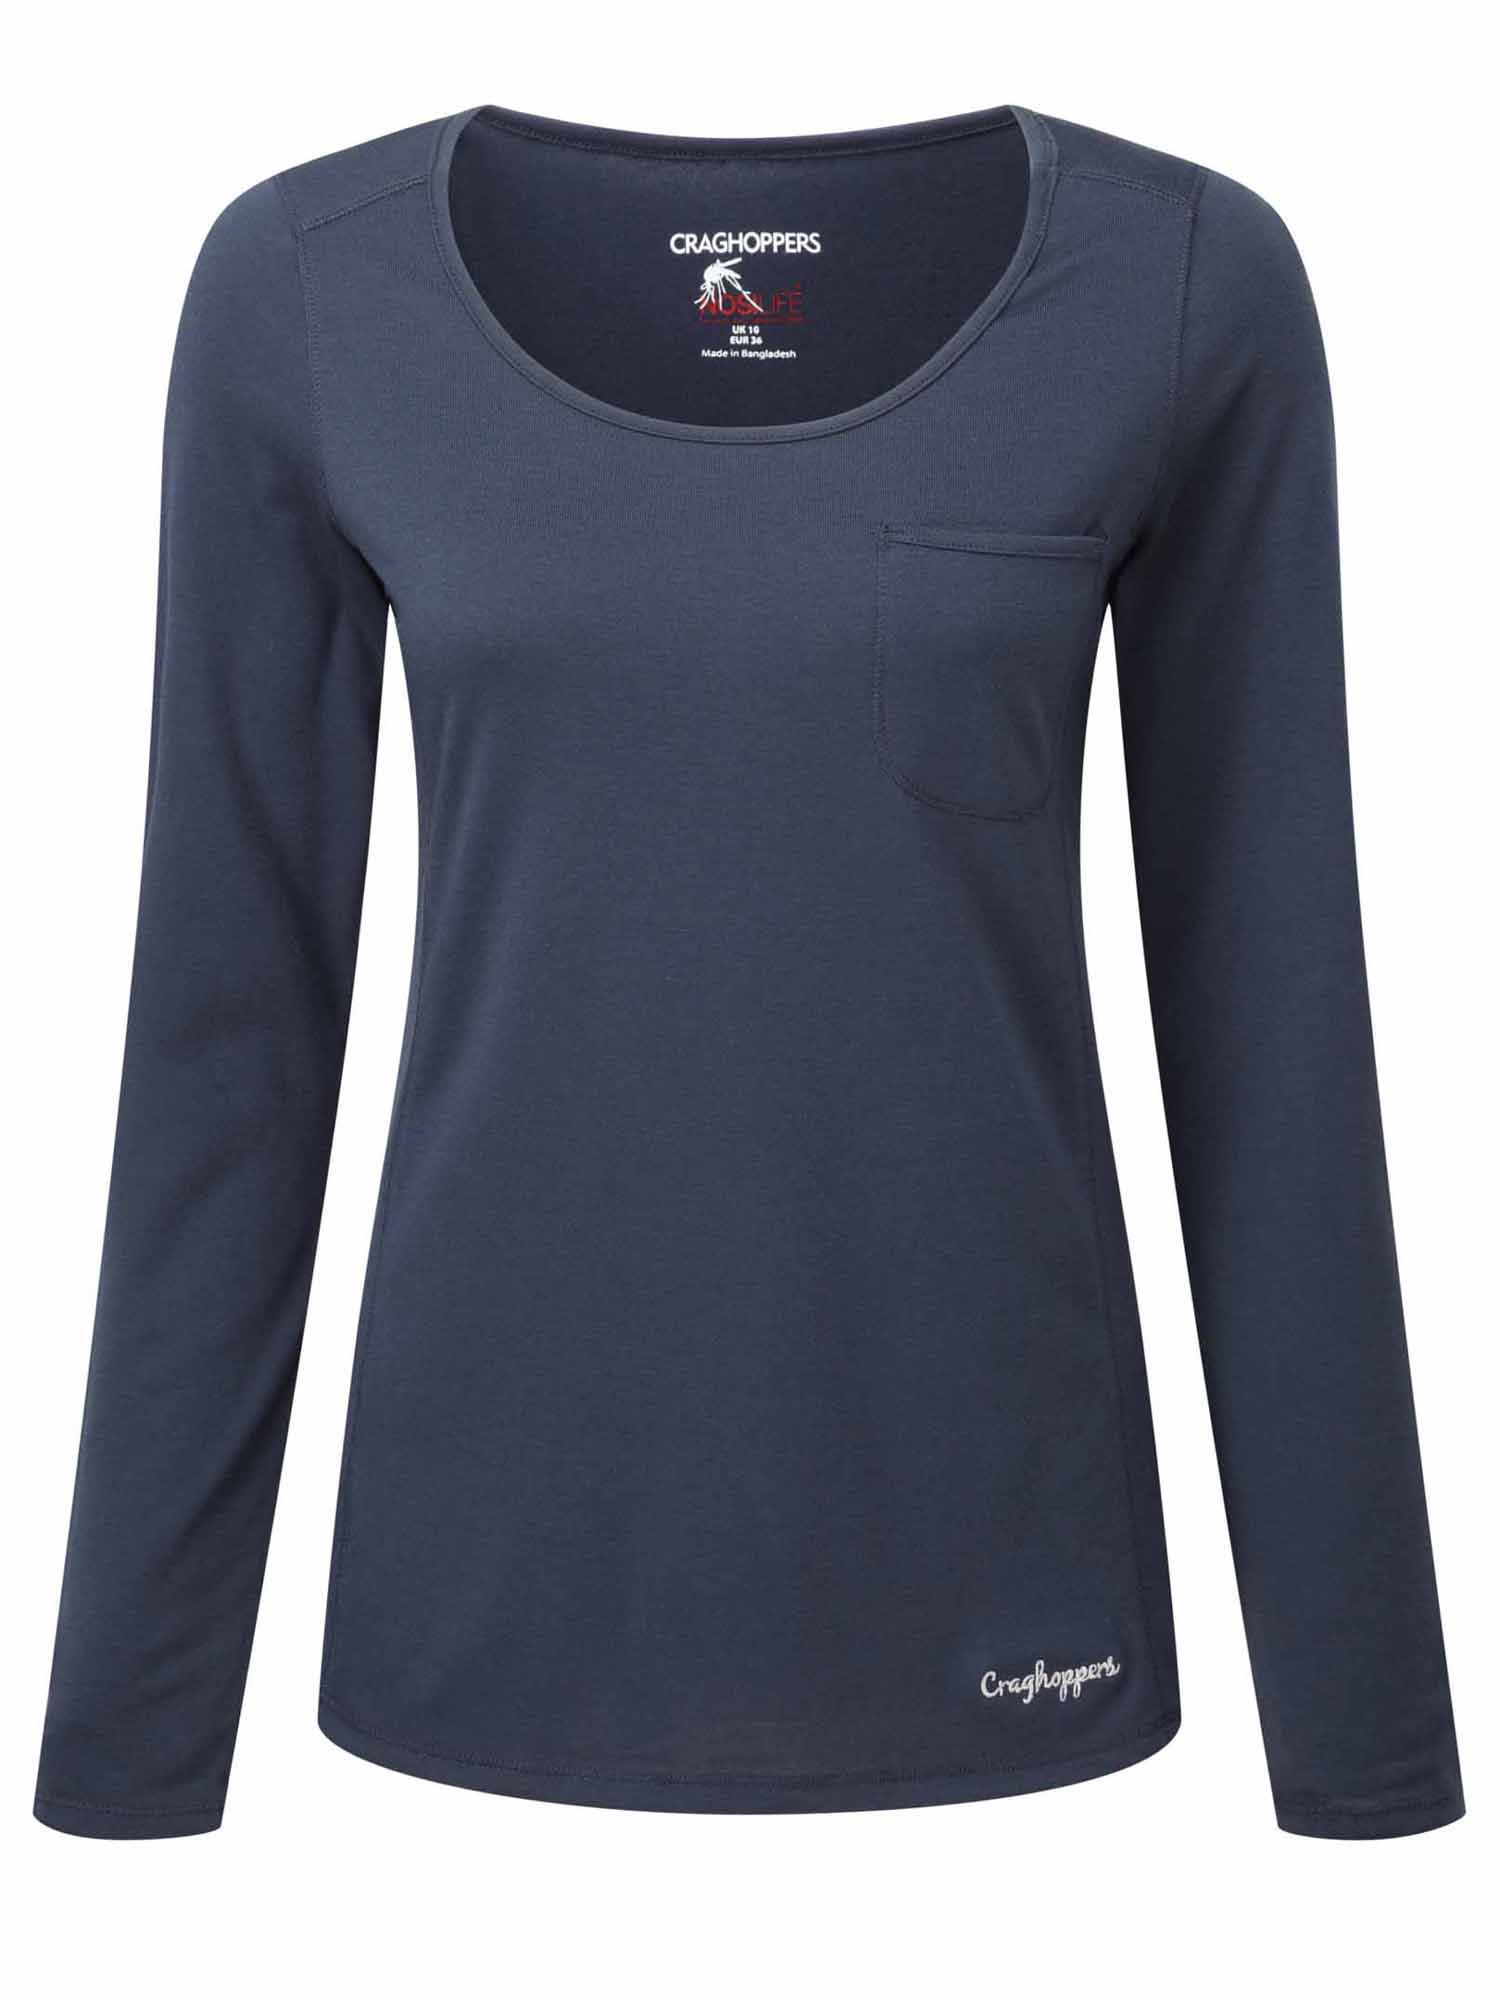 Craghoppers Craghoppers NosiLife Long Sleeved Tee, Navy